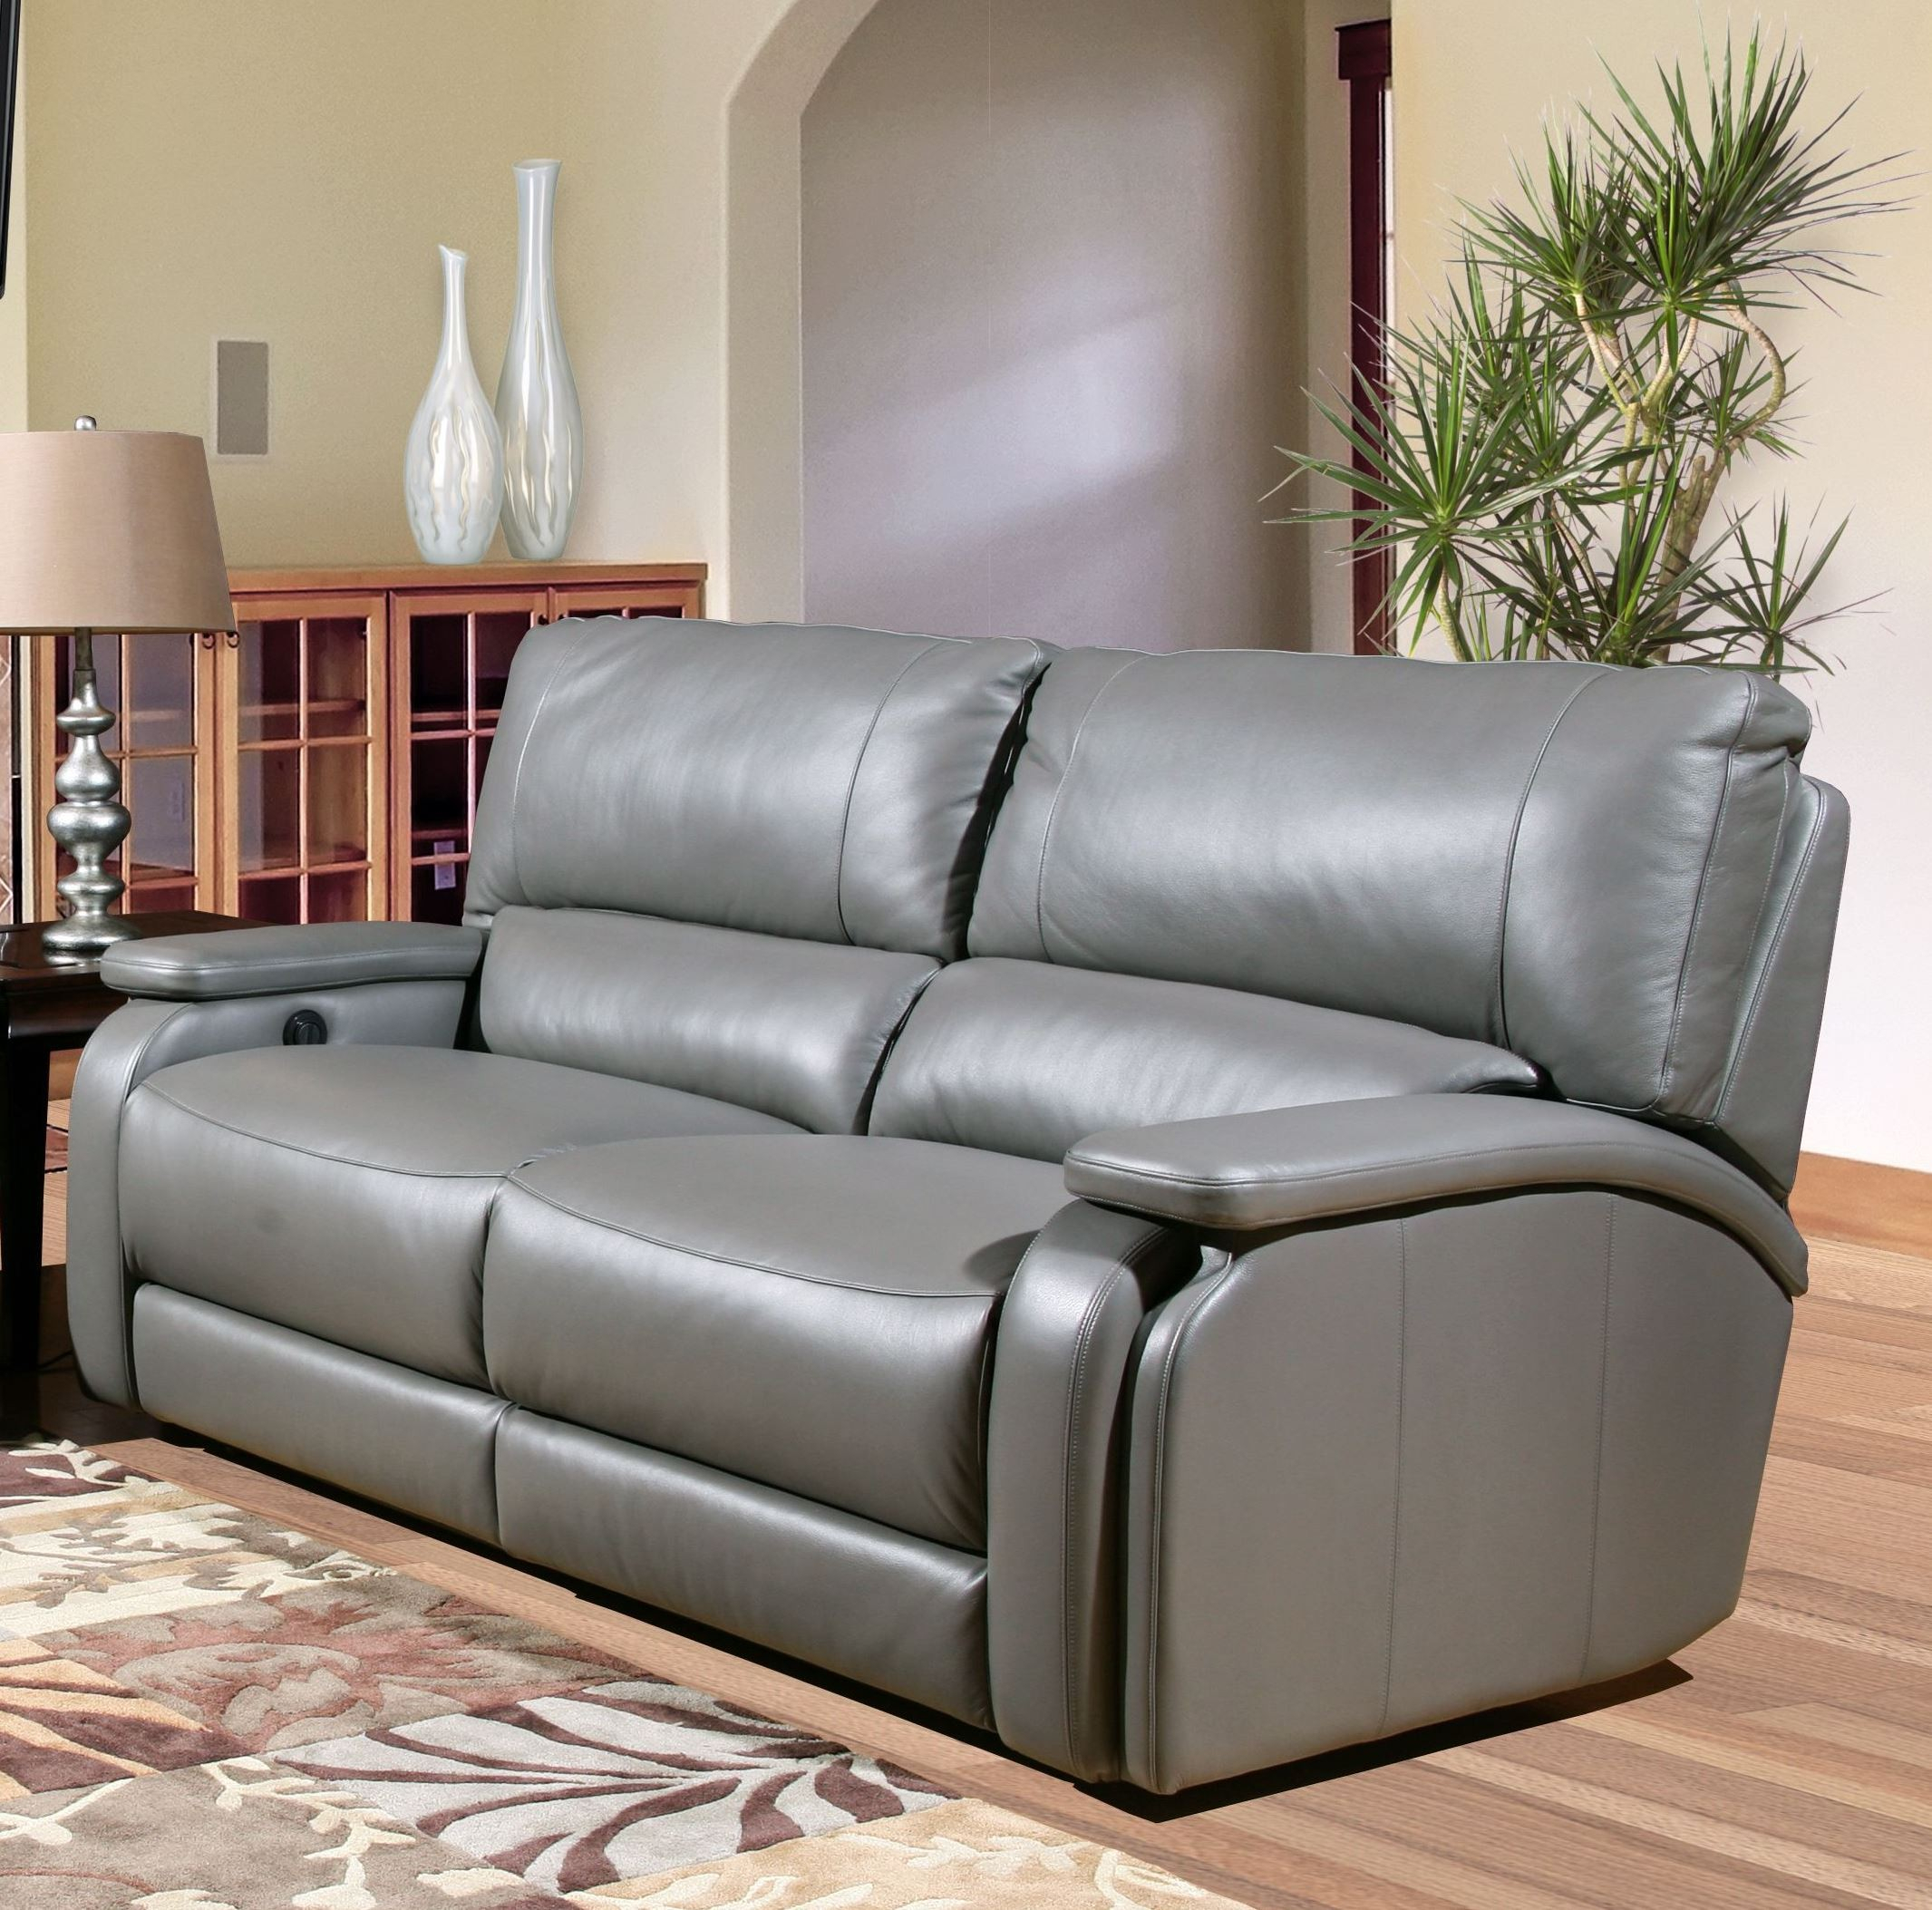 Grisham Heron Dual Power Reclining Sofa From Parker Living Pertaining To Raven Power Reclining Sofas (View 4 of 15)